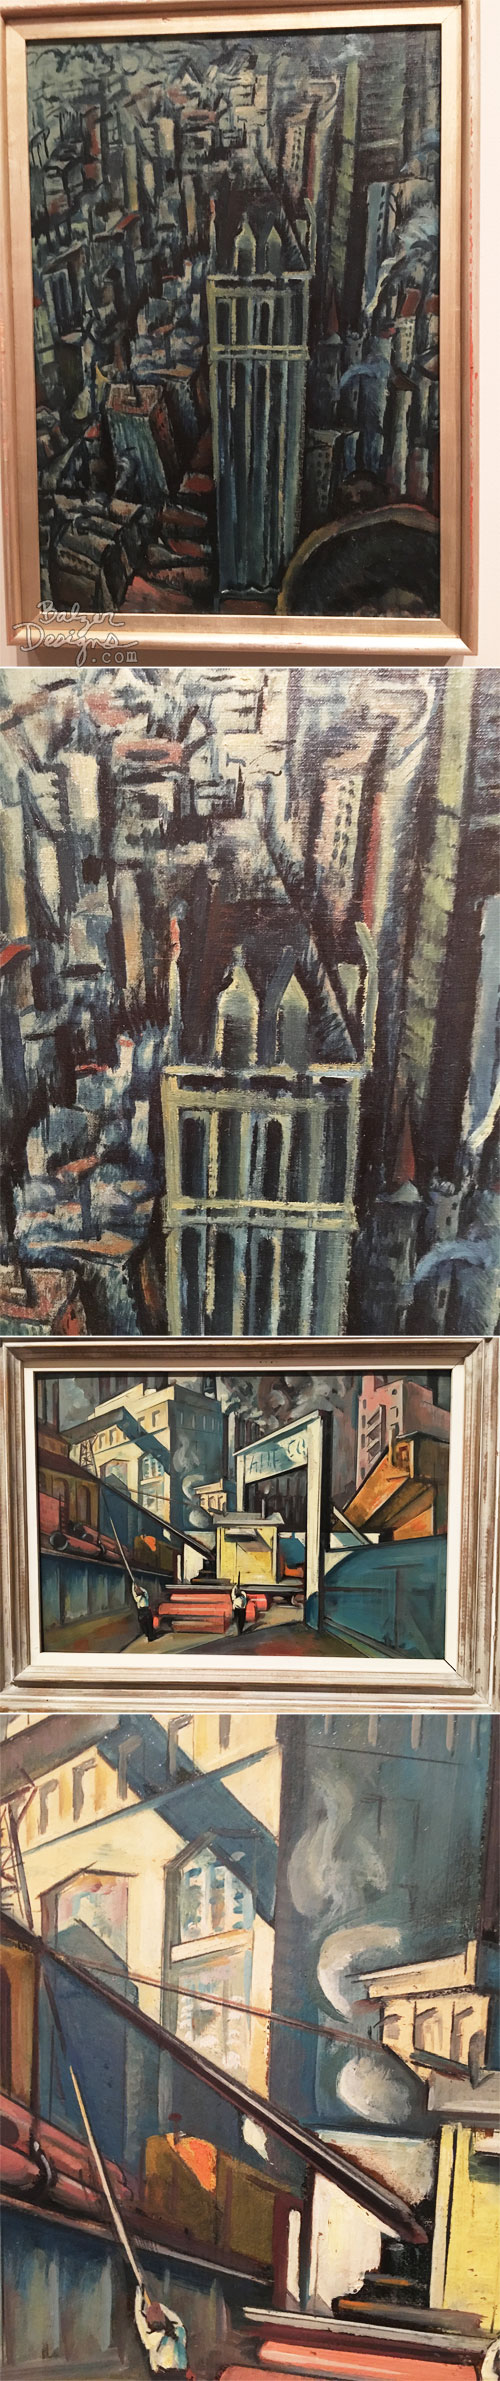 from the Balzer Designs Blog: The Idea of North: The Paintings of Lawren Harris